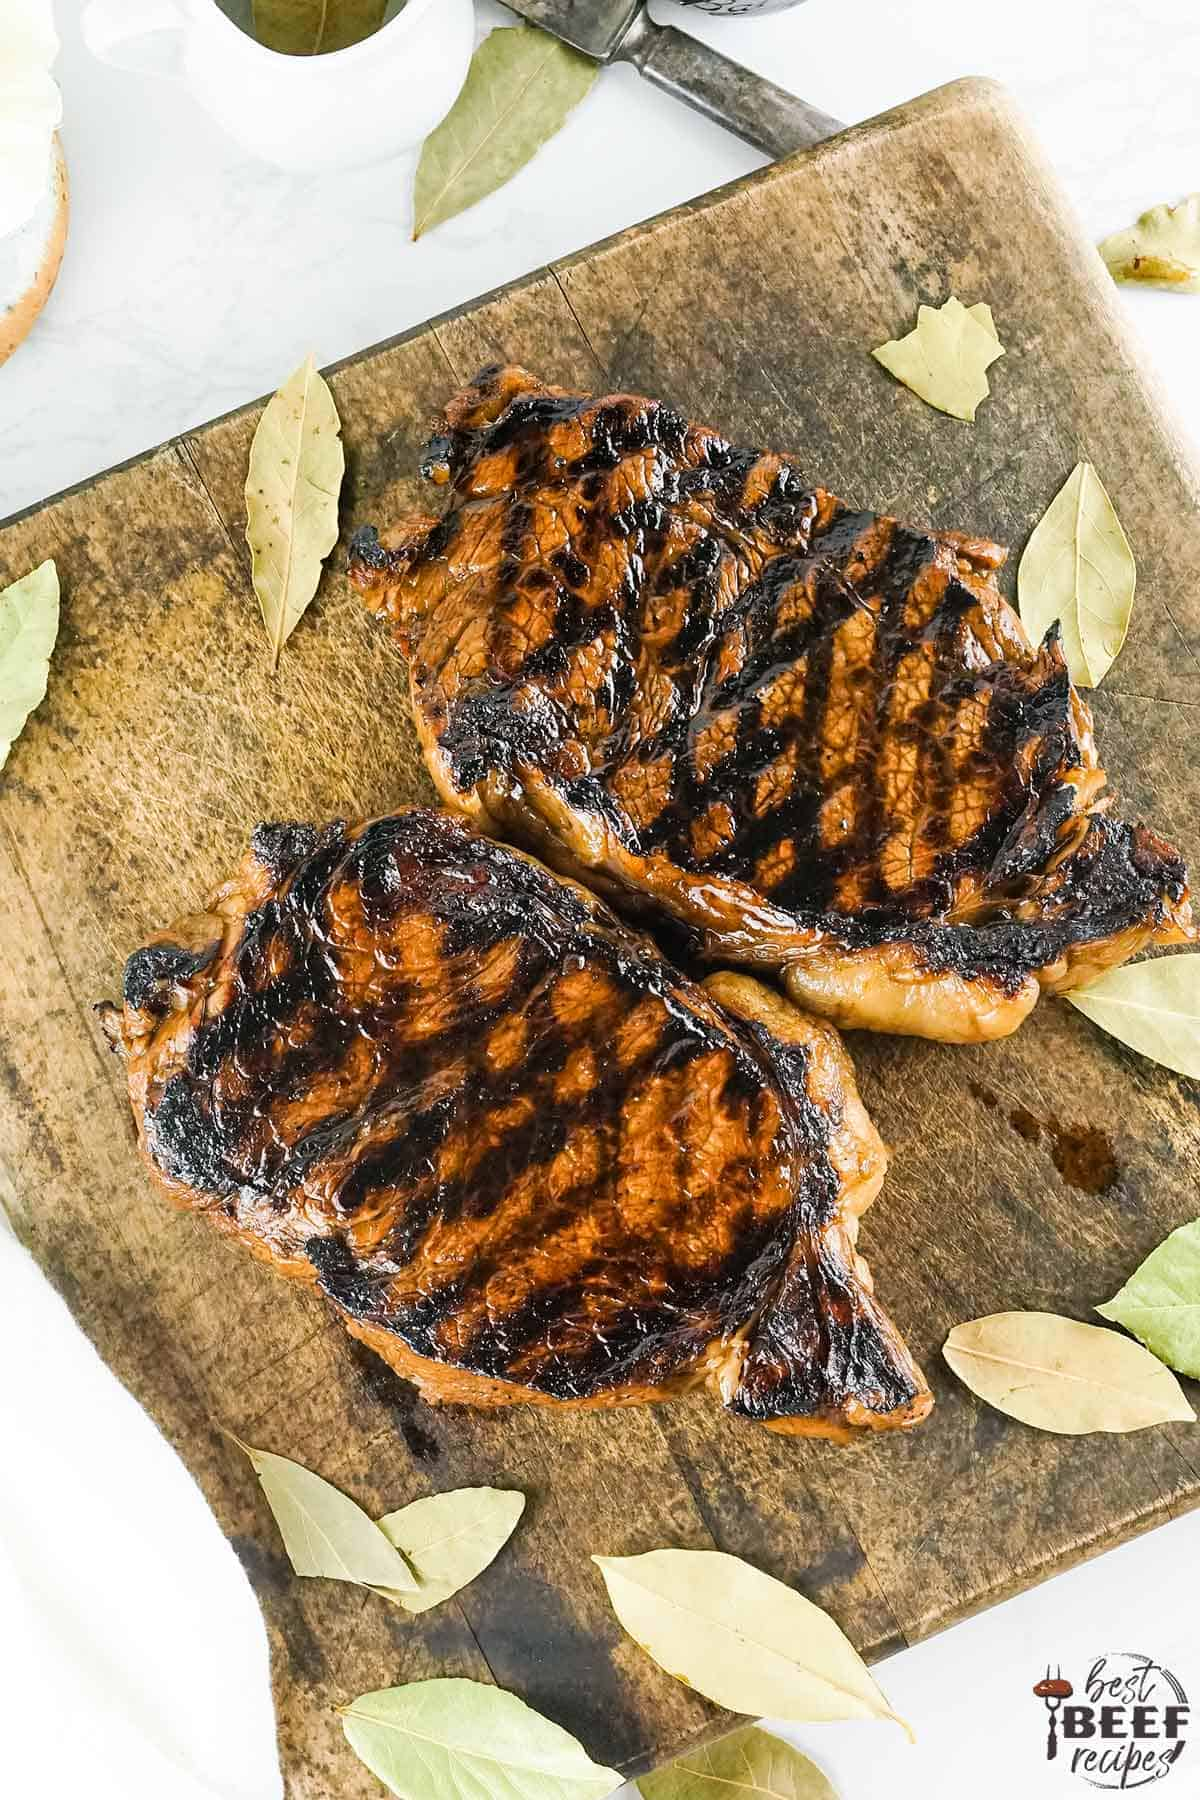 Grilled New york strip steaks on a cutting board up close